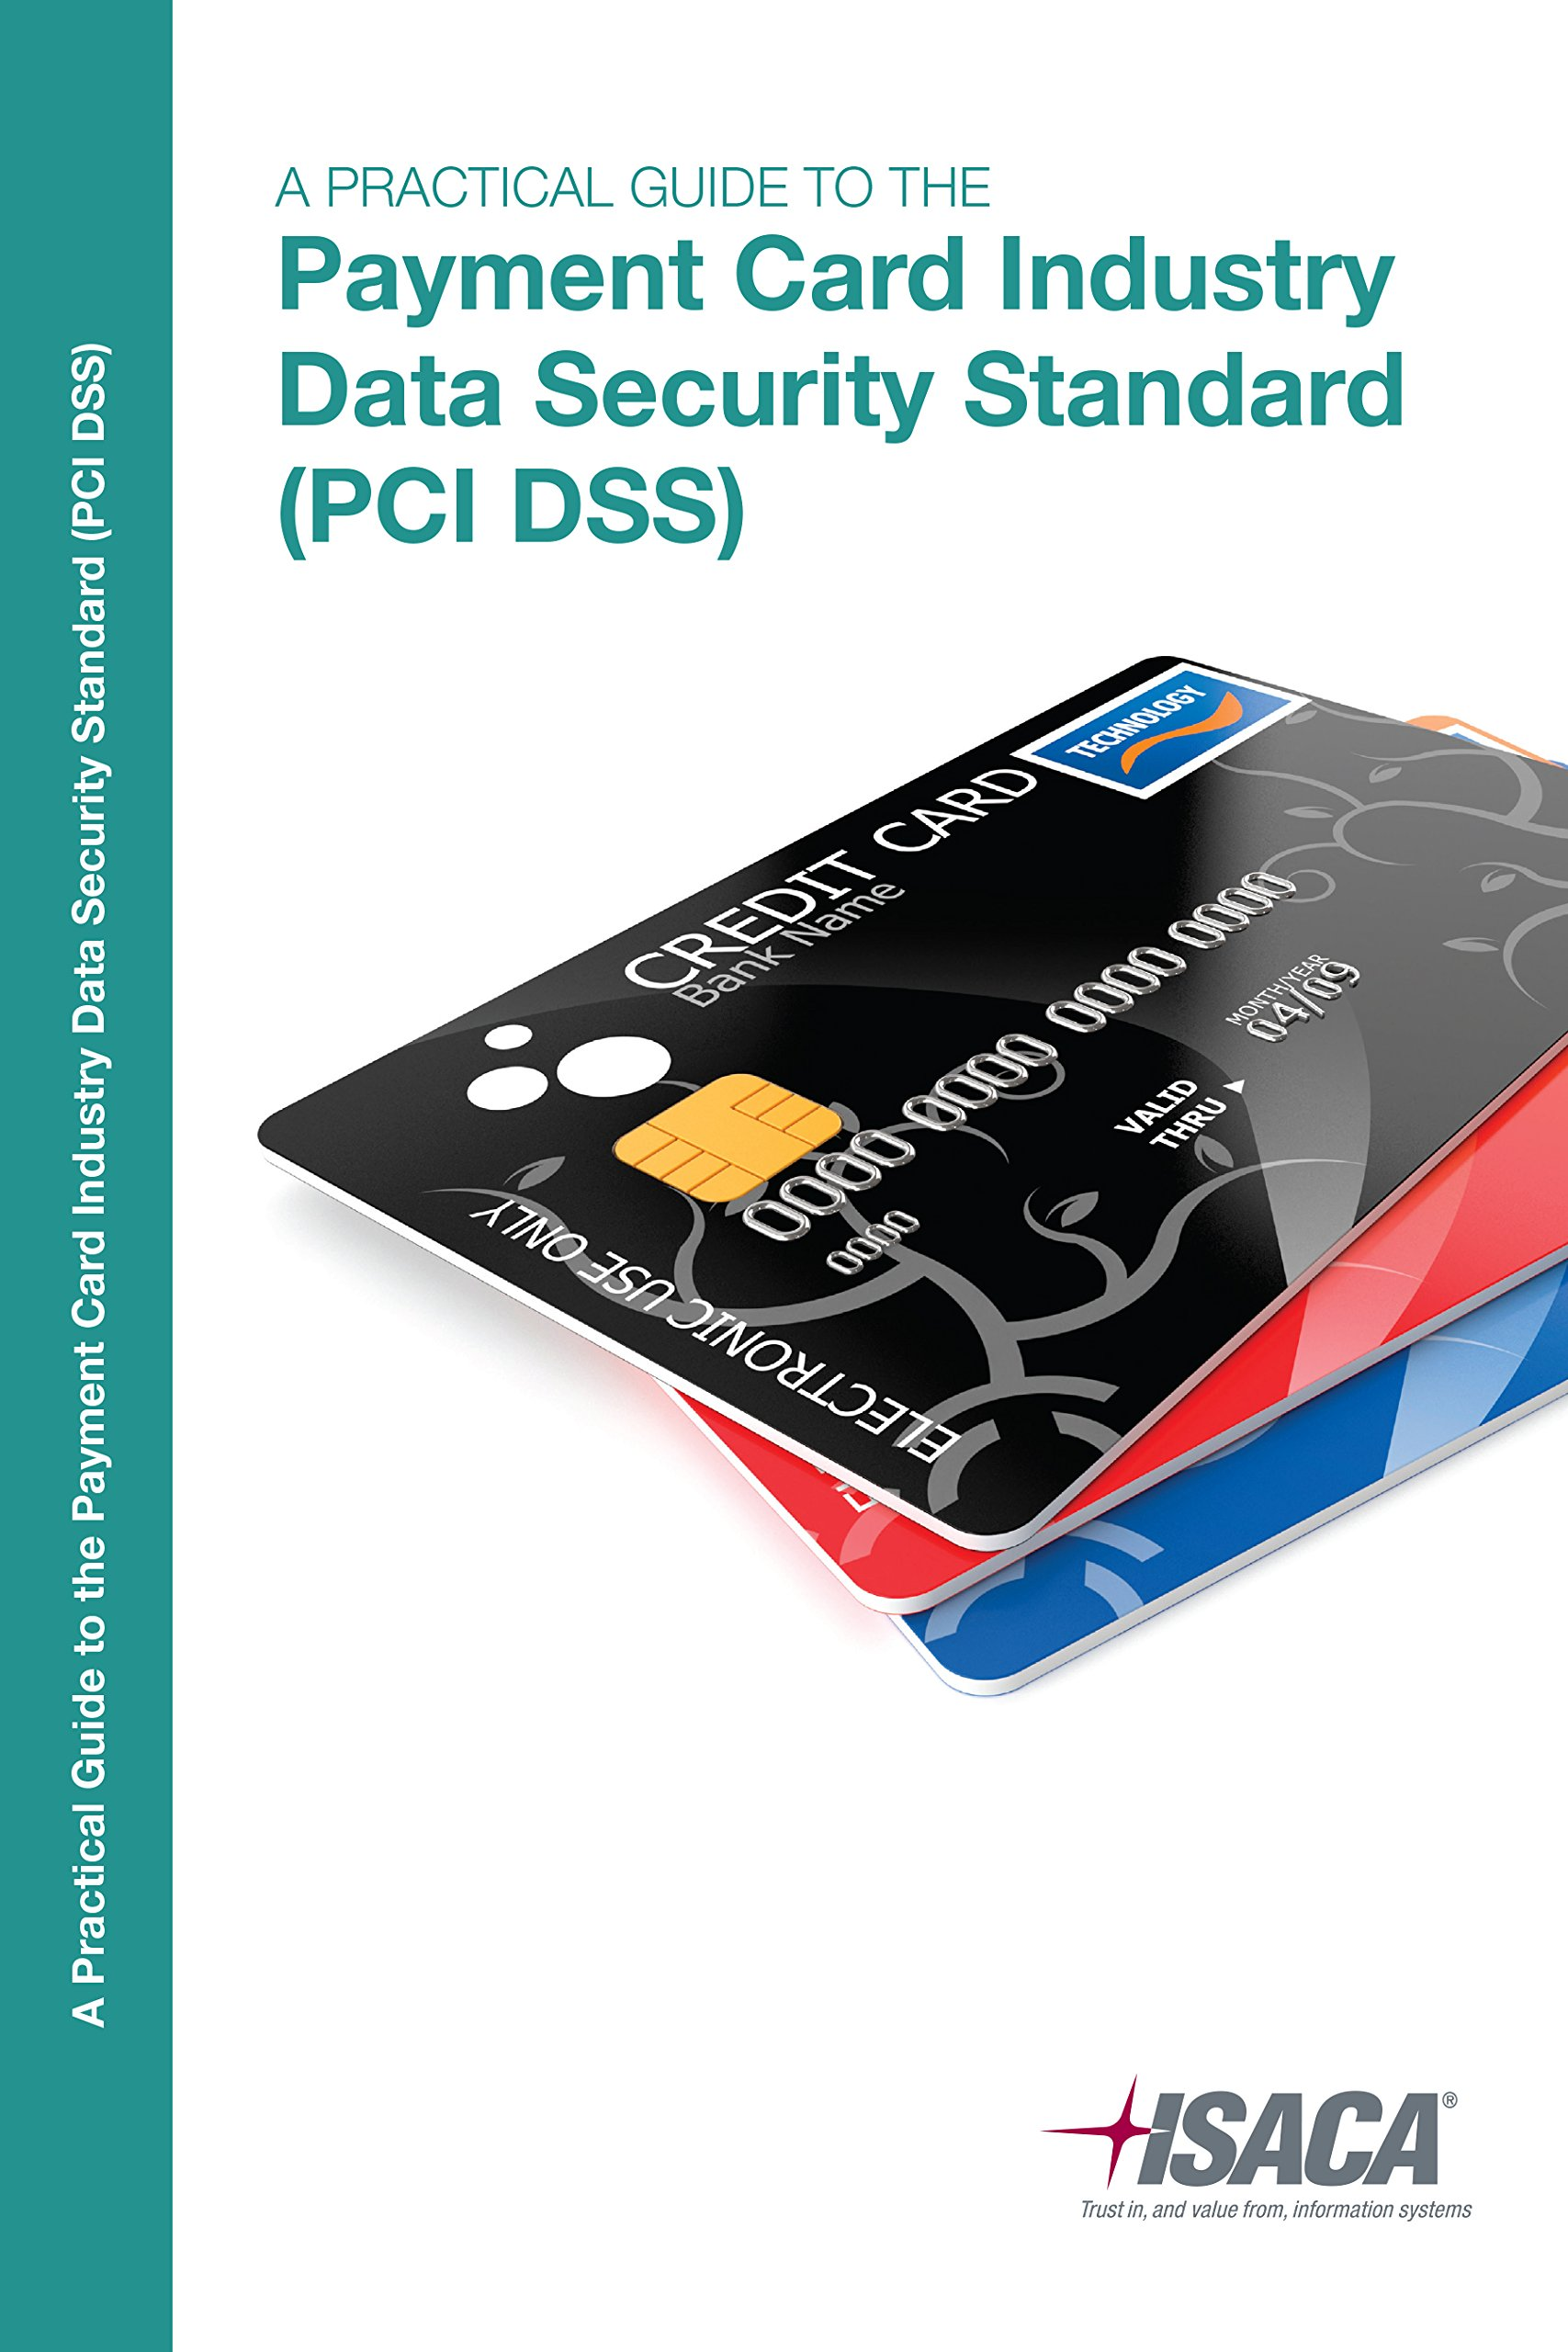 Pci Dss A Practical Guide To The Payment Card Industry Data